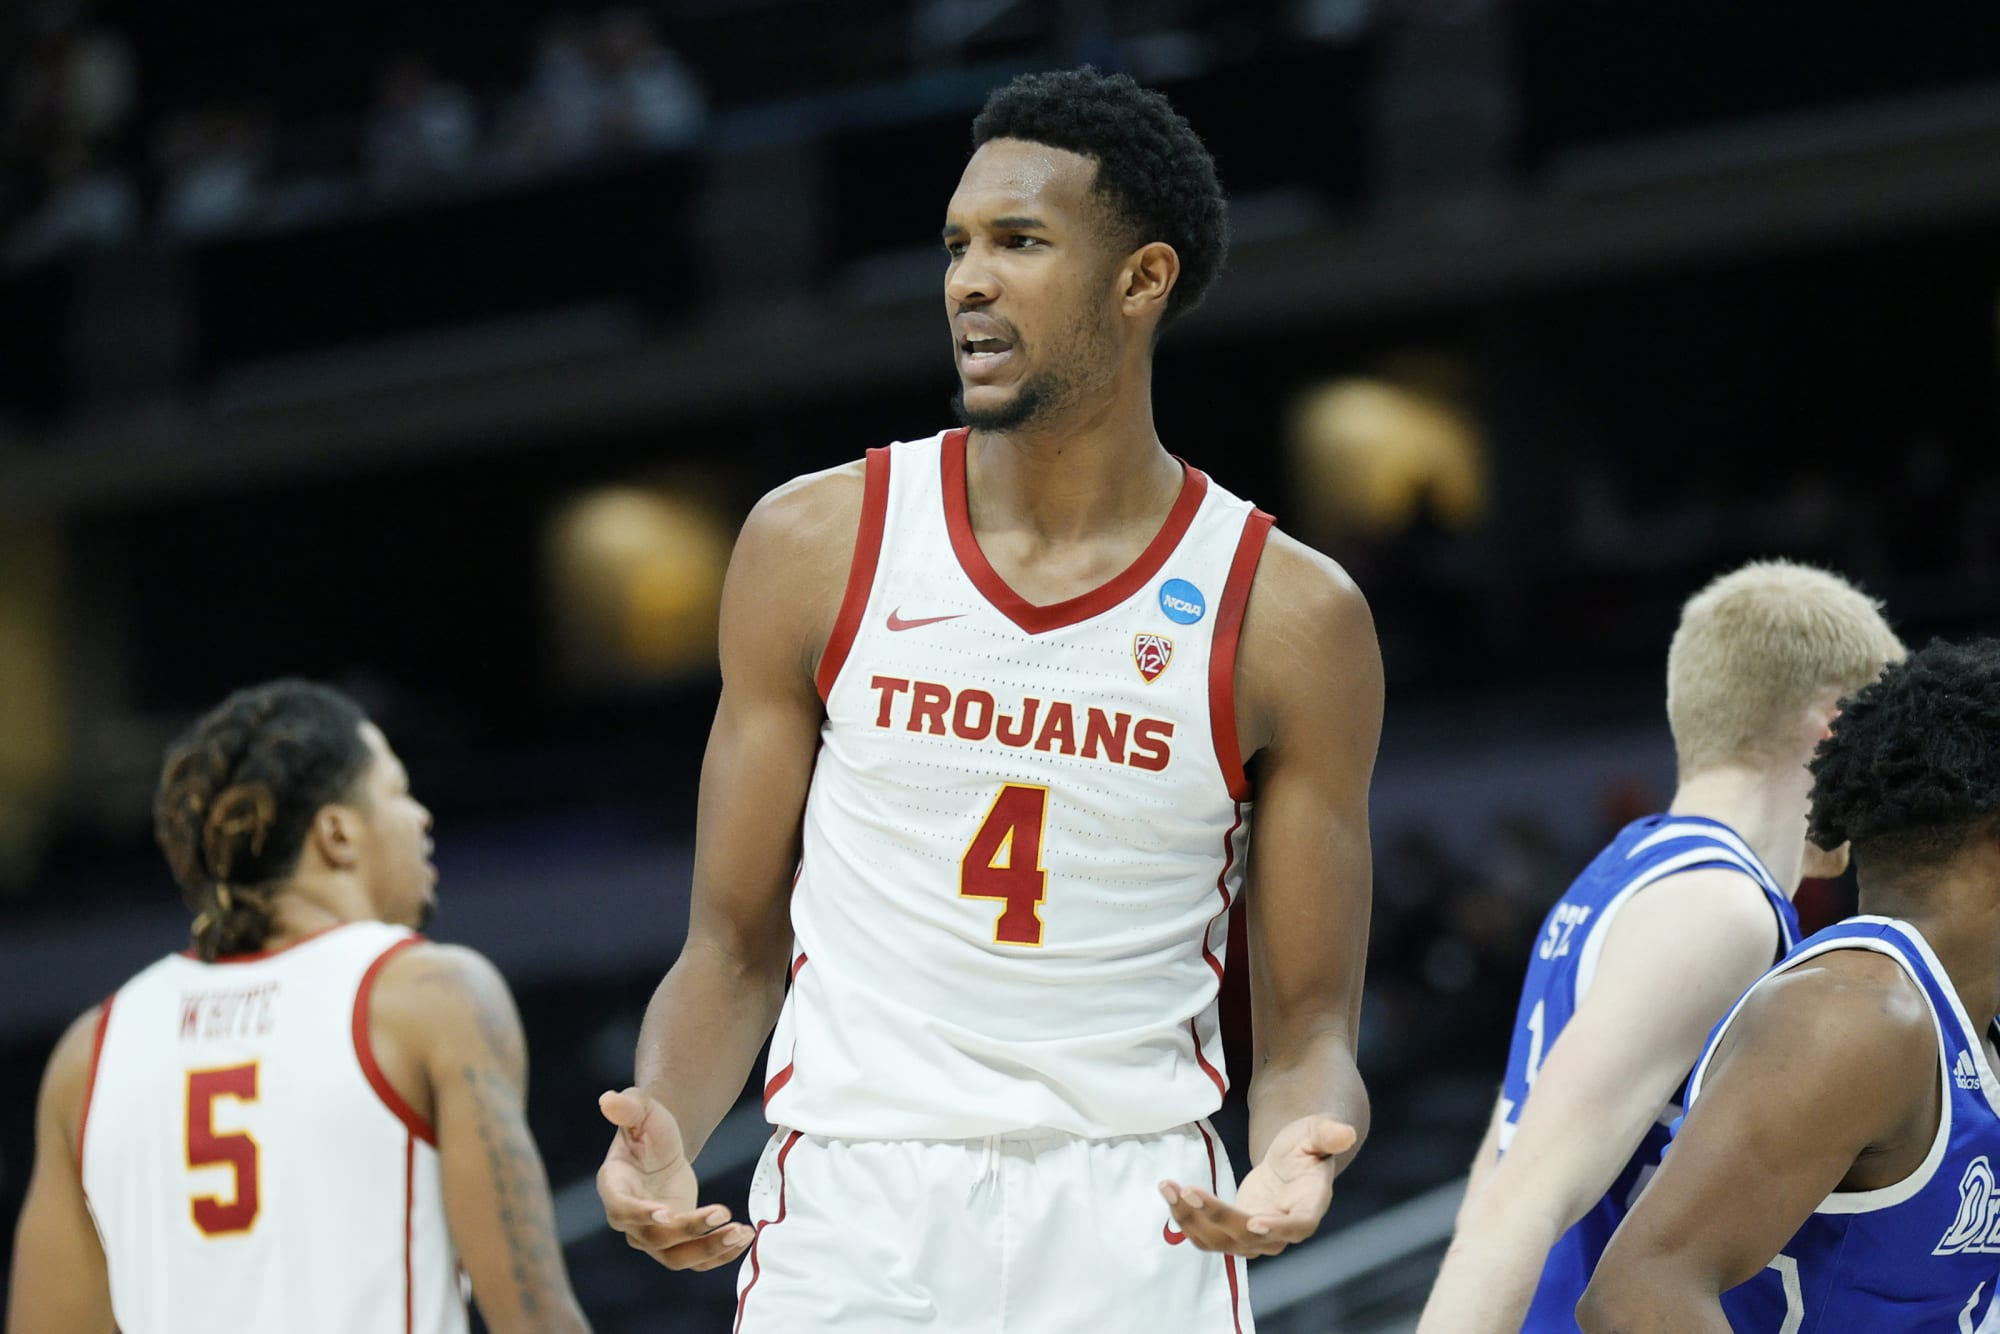 Toronto Raptors draft: Ranking the top 4 prospects and their fit